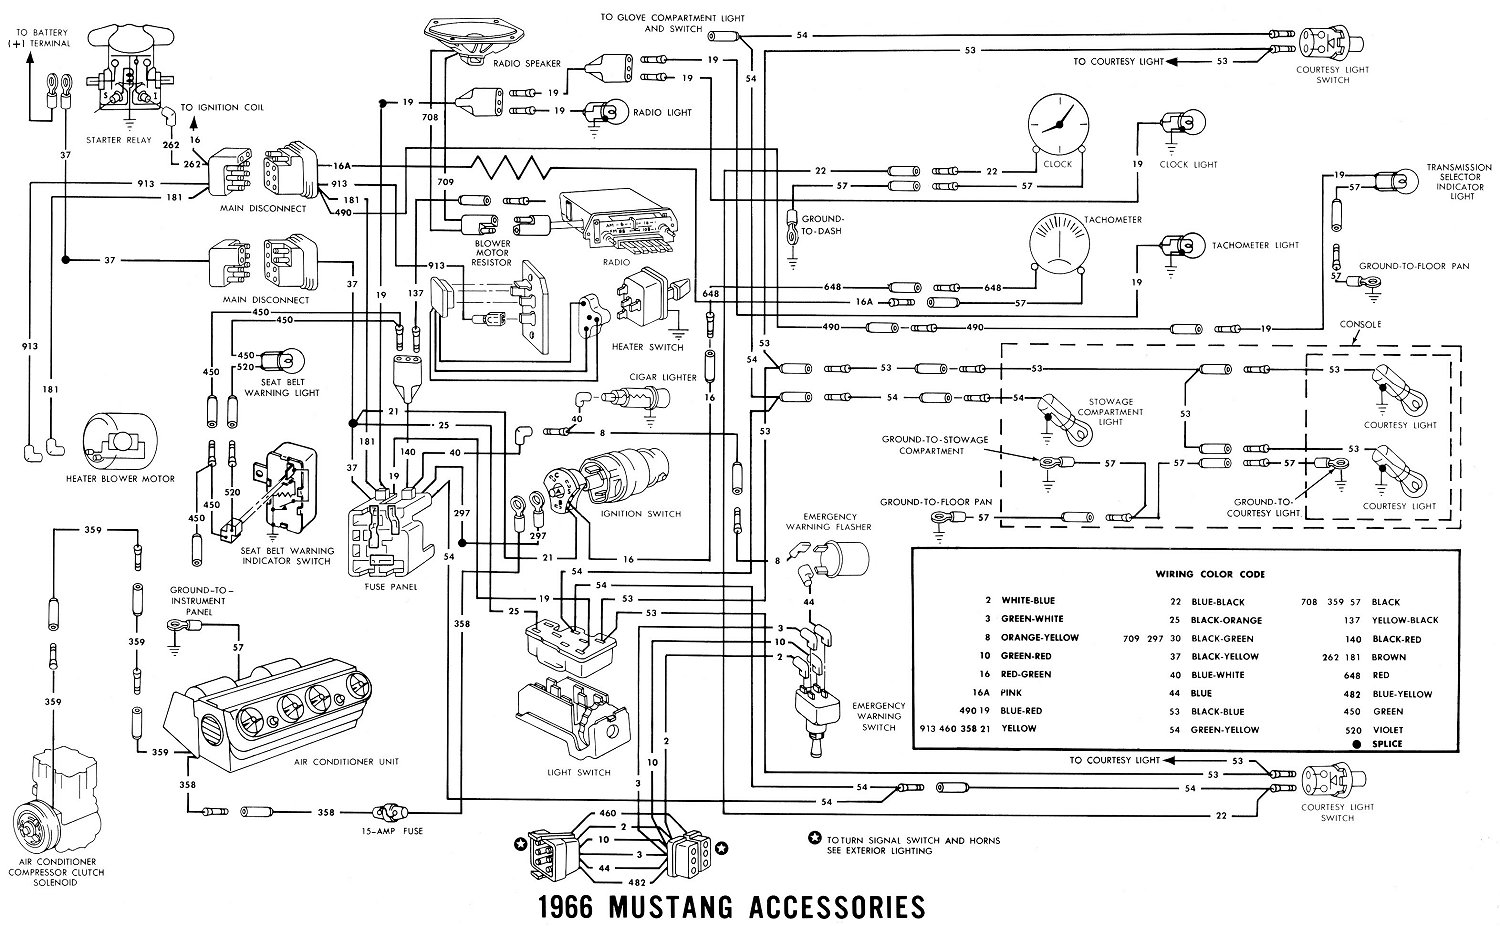 89 mustang wiring diagram online circuit wiring diagram u2022 rh electrobuddha co uk 1966 ford mustang wiring diagram 2005 ford mustang wiring diagram